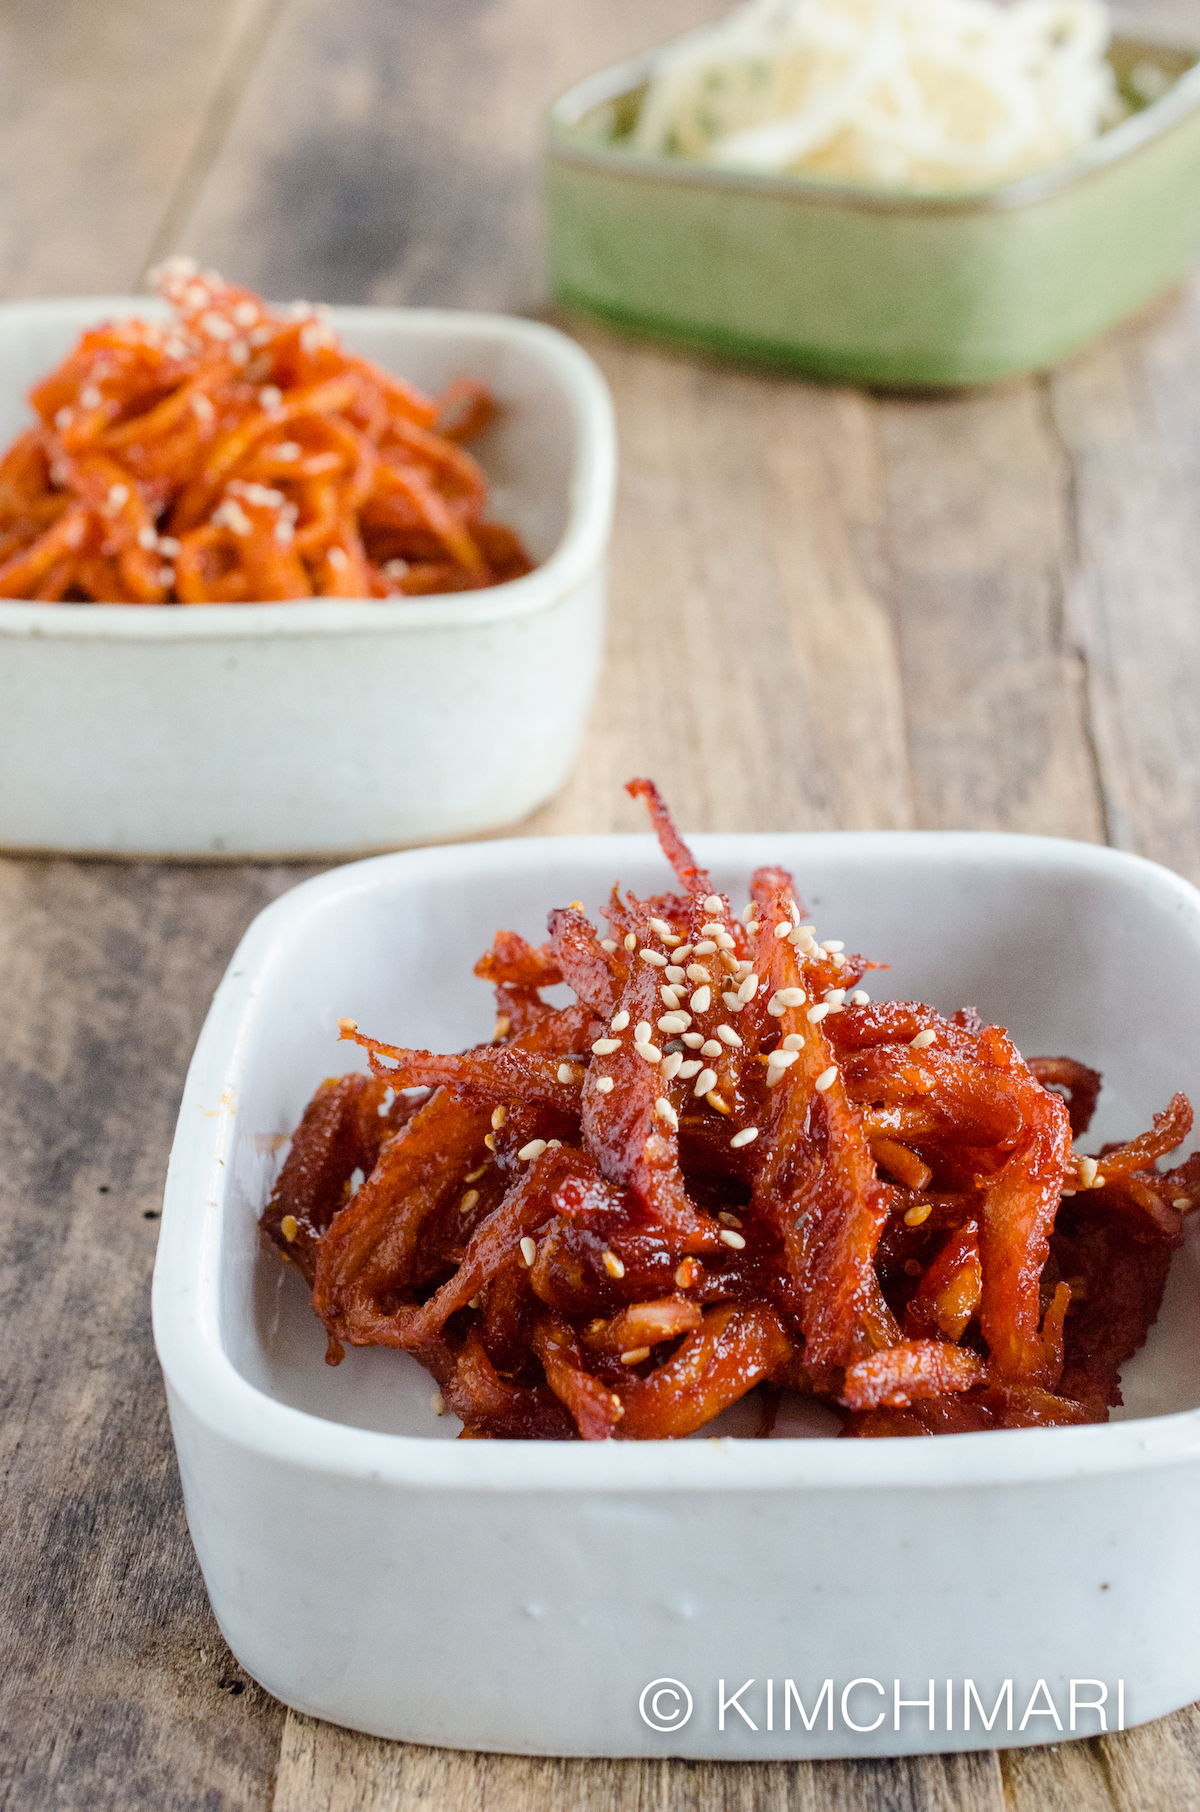 How to make dried squid at home